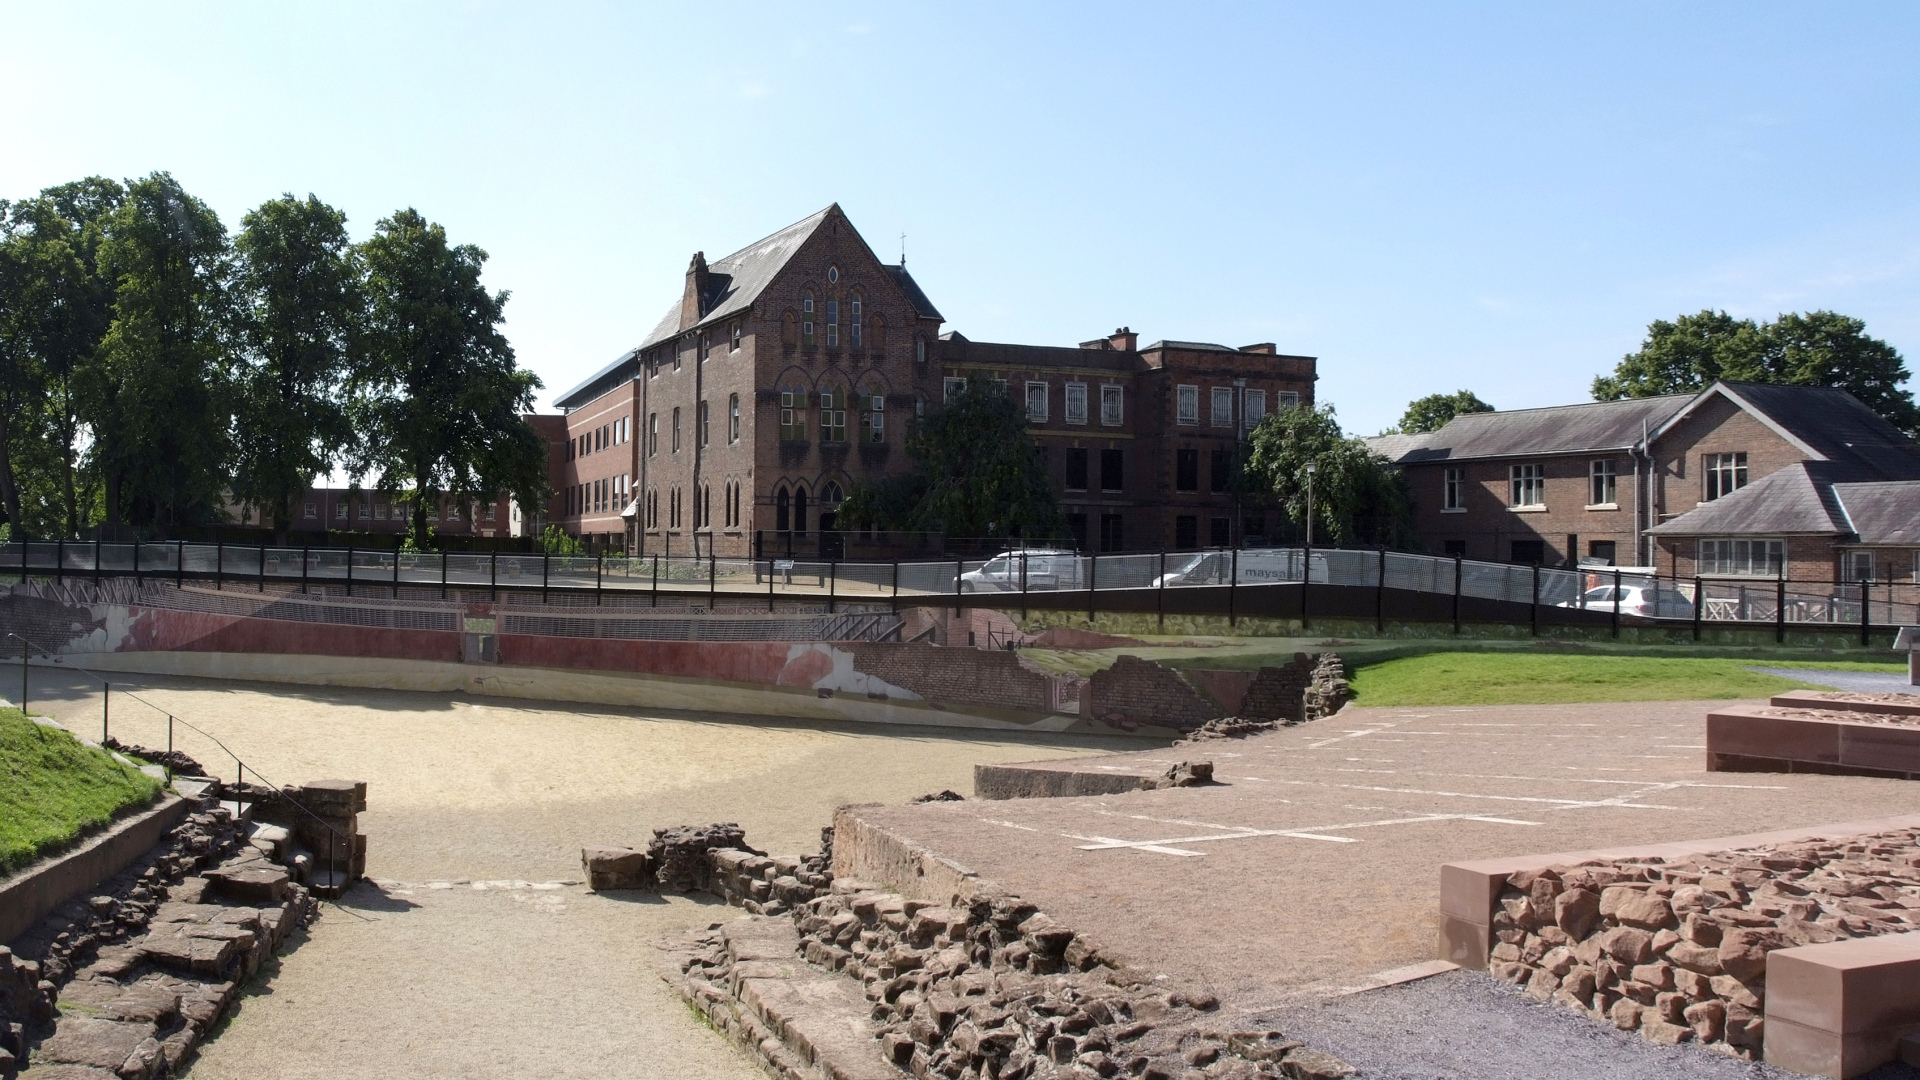 Dee House and the adjacent amphitheatre in Chester.